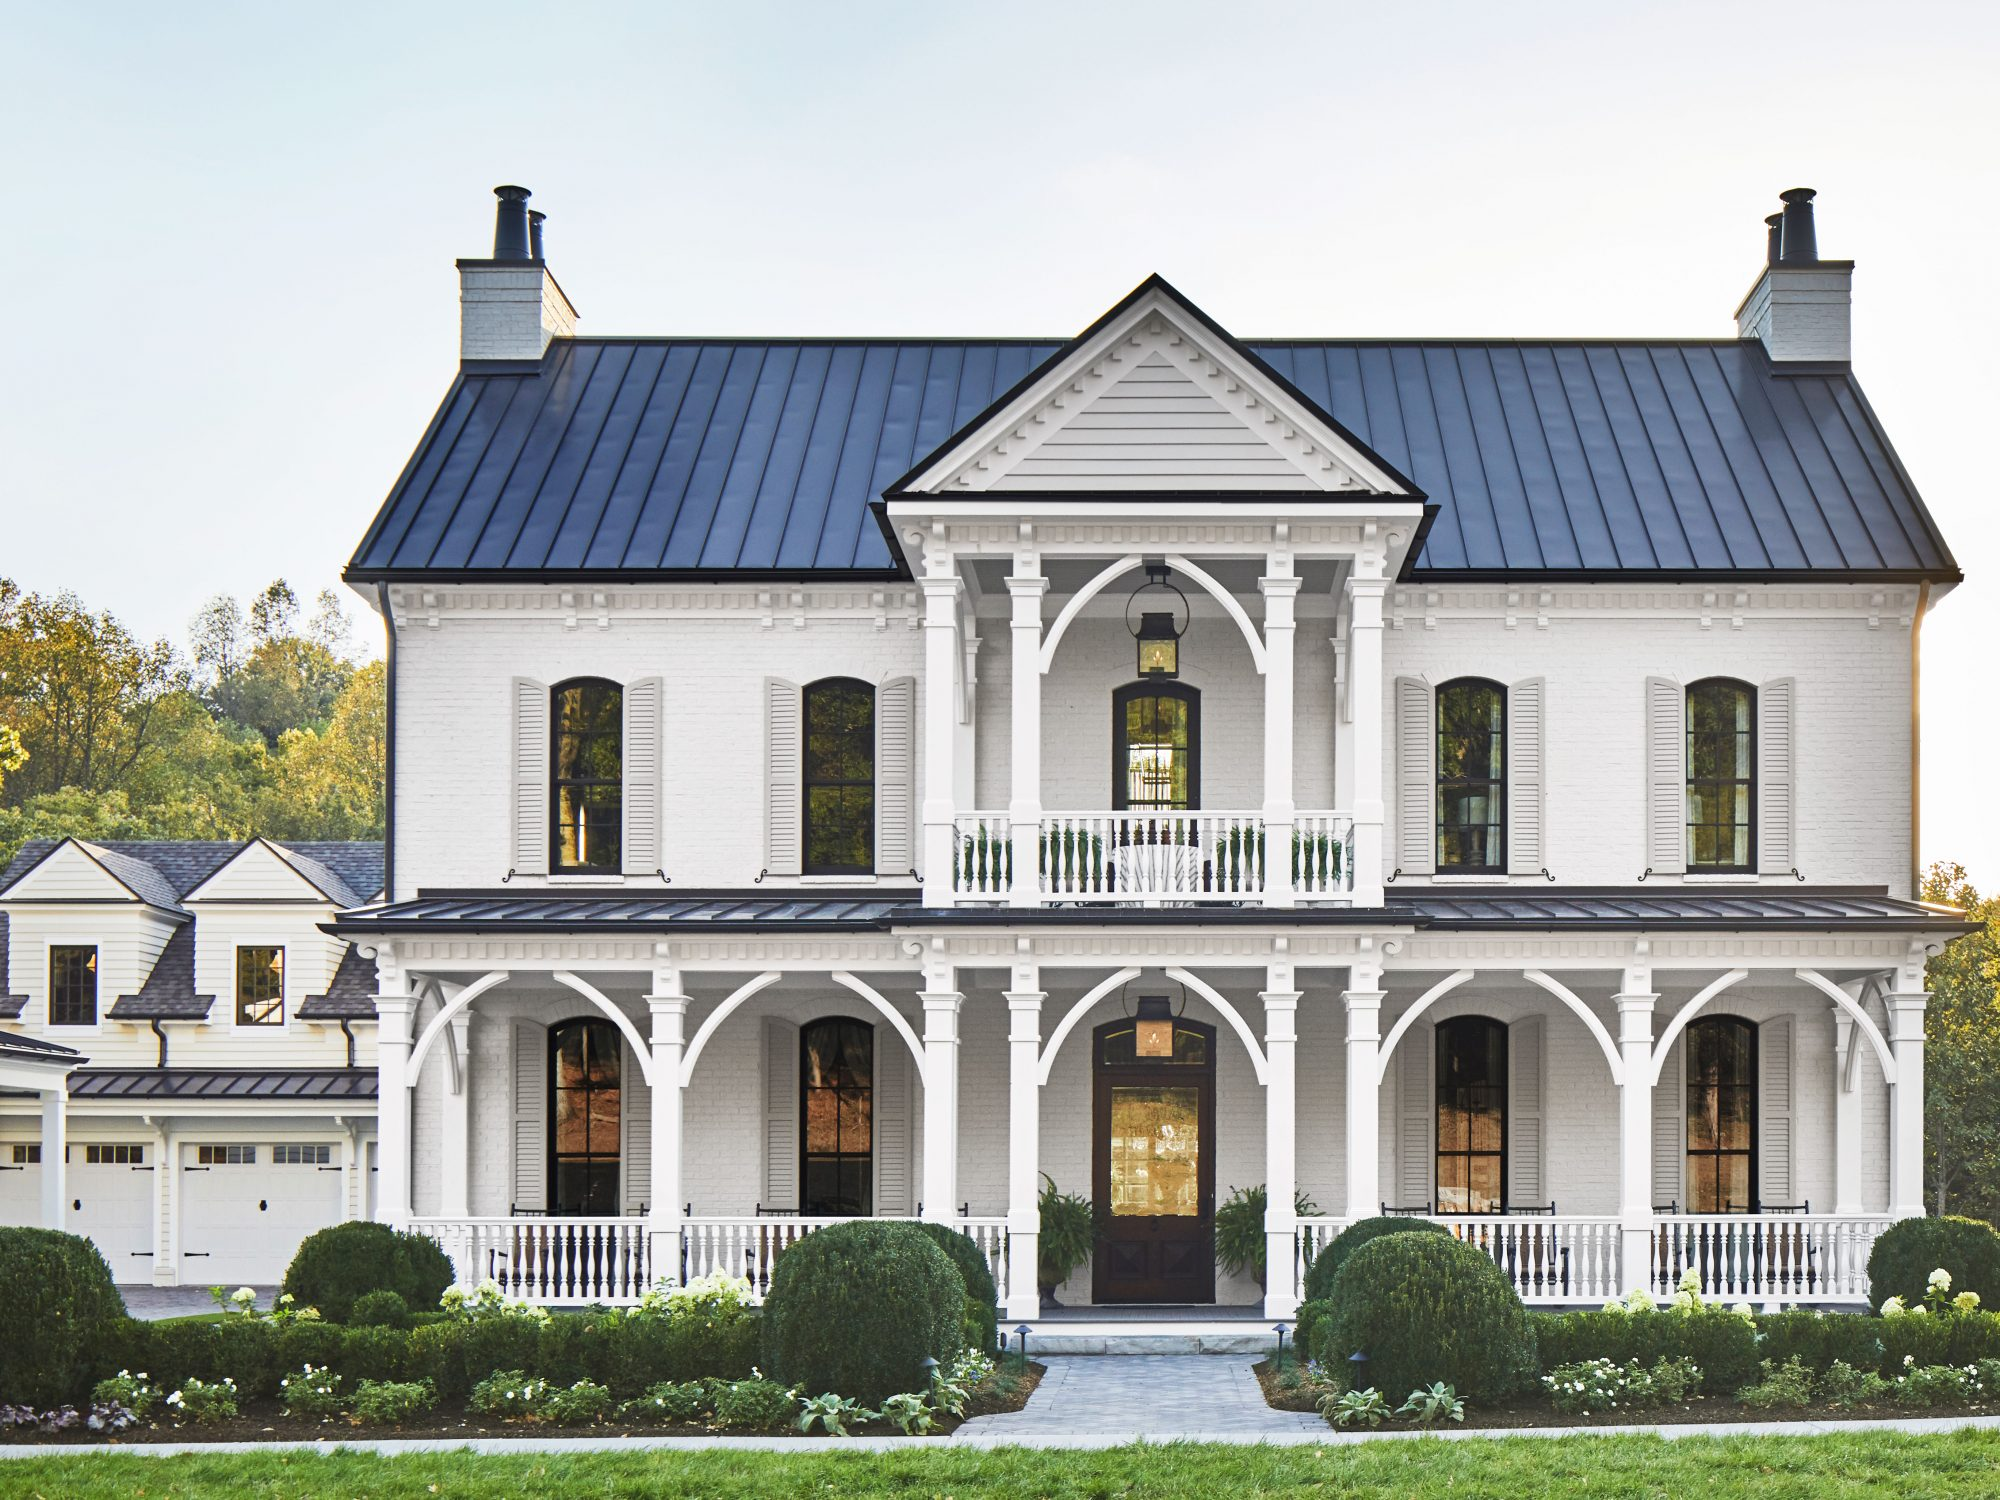 Front Exterior of a White Two Story Farmhouse in Tennessee